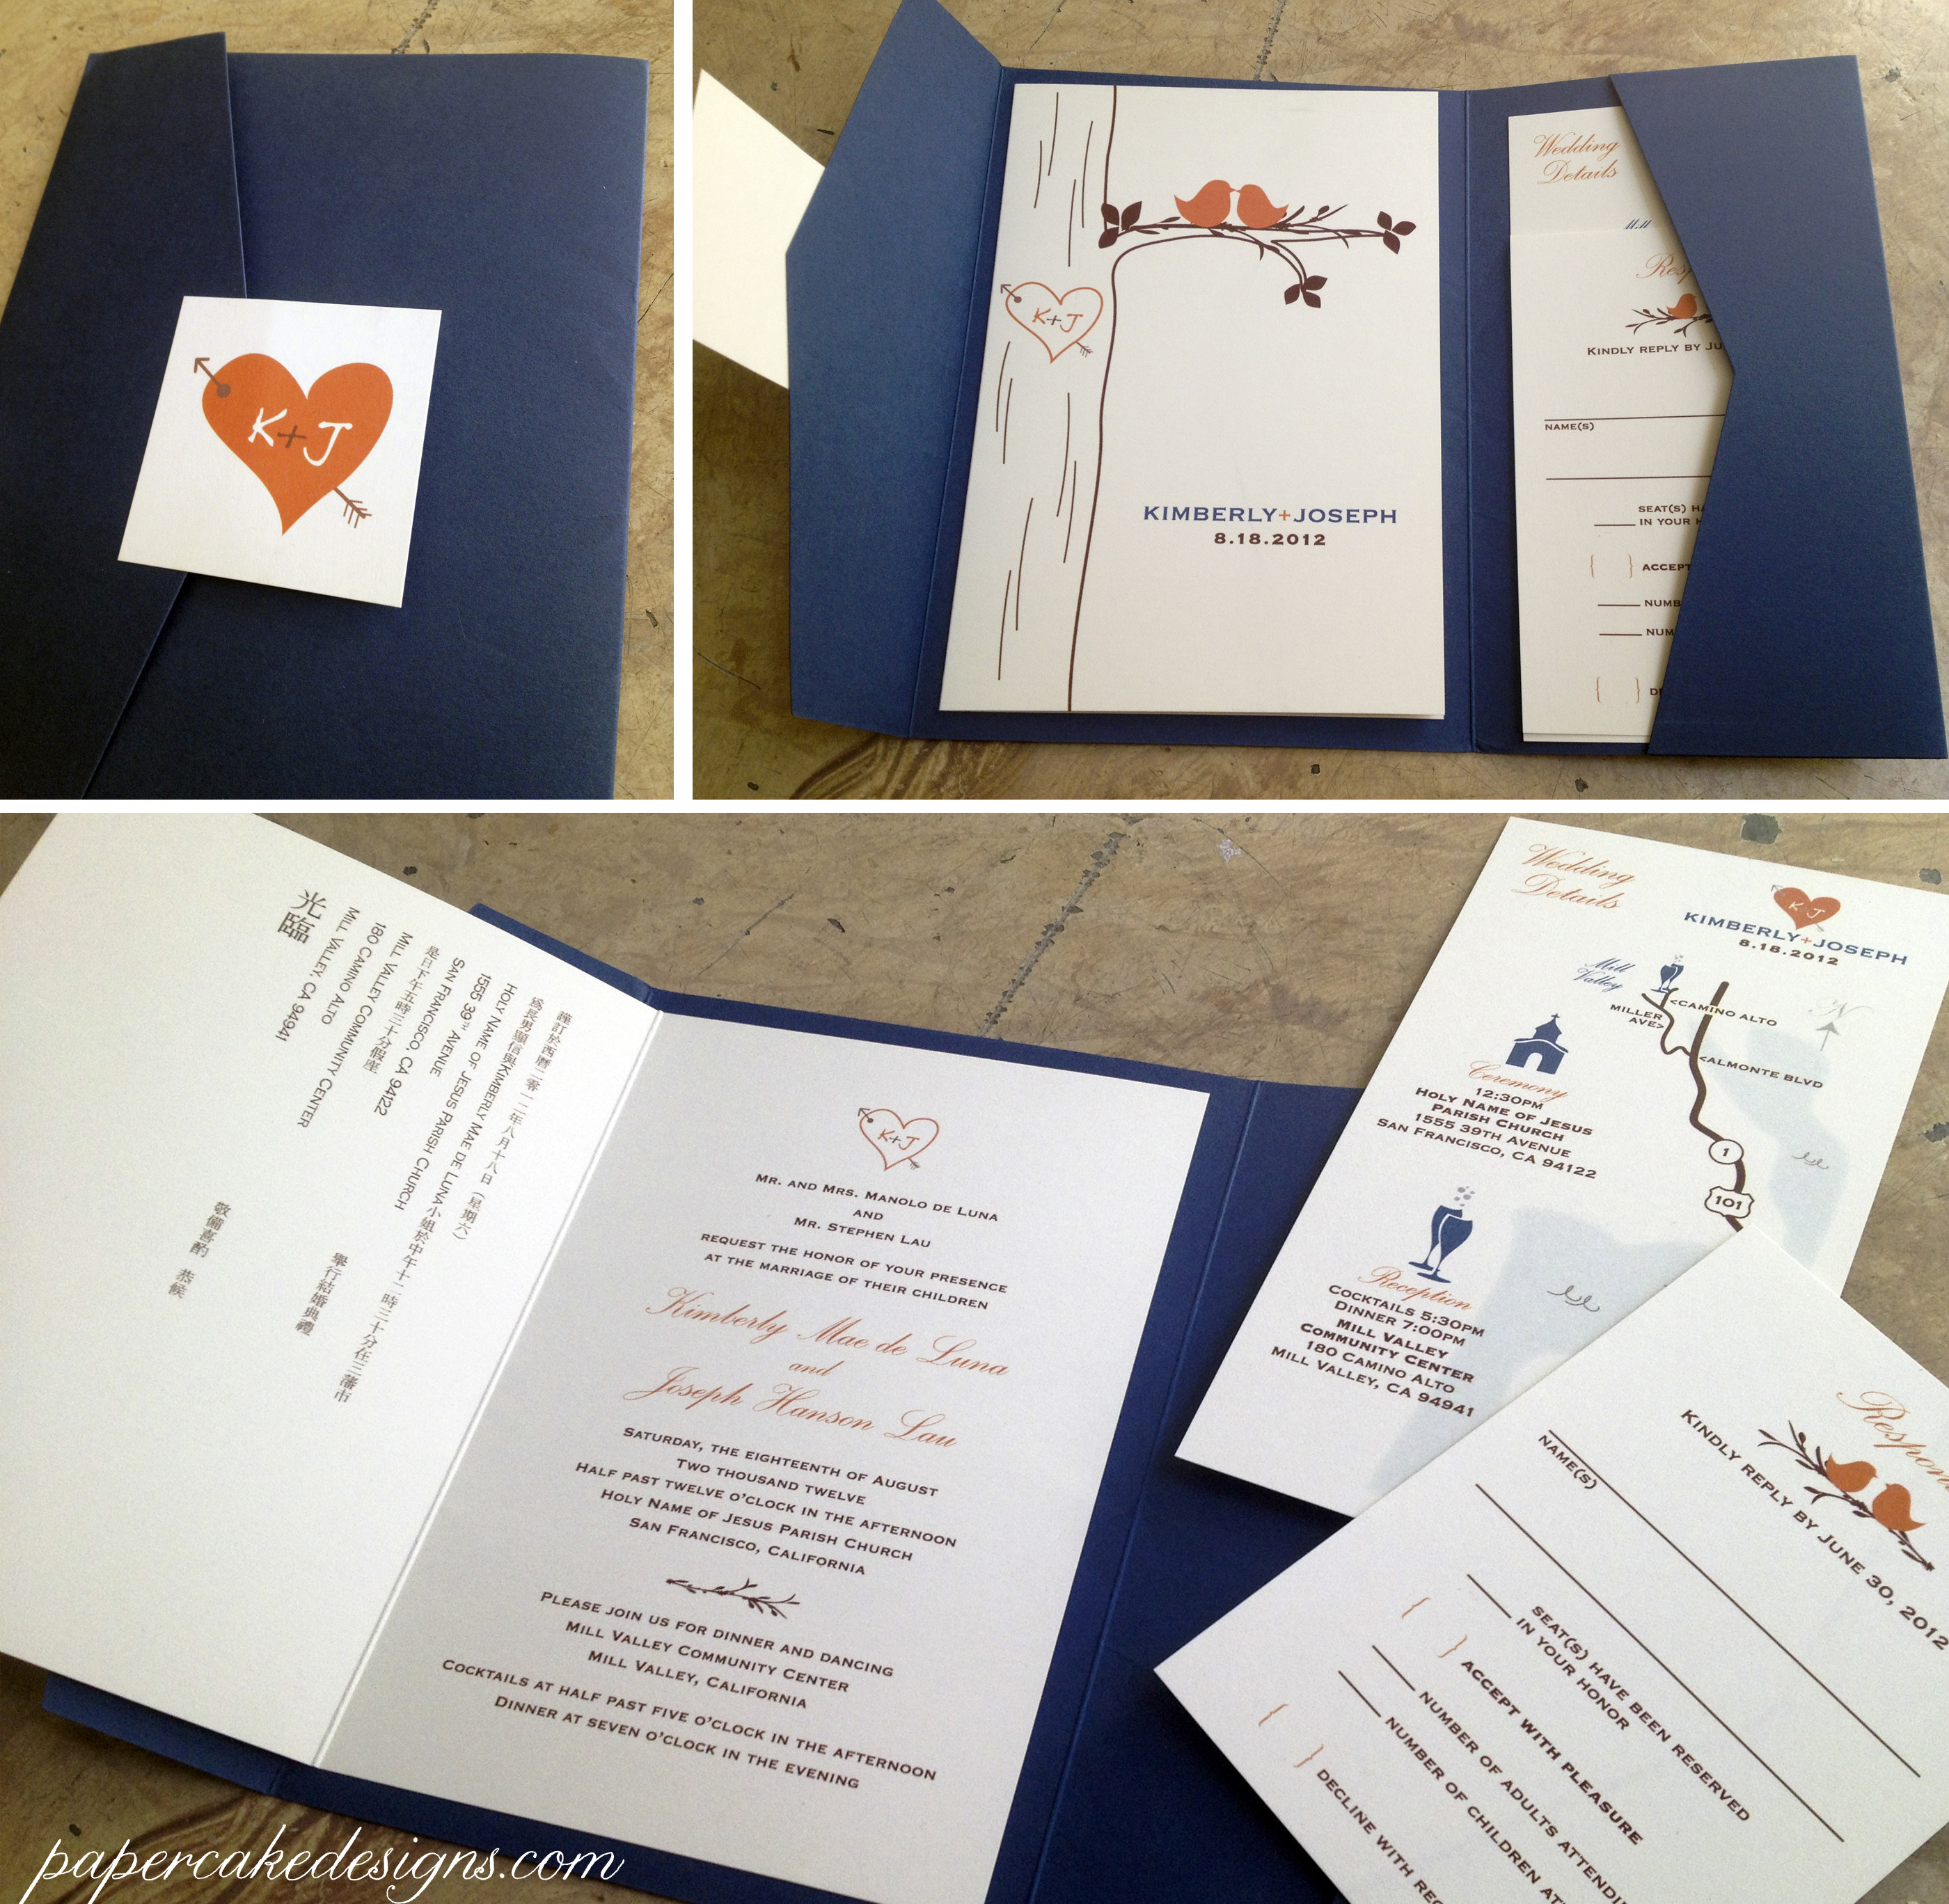 Best ideas about Wedding Invite DIY . Save or Pin [DIY print & assemble] wedding invitations – papercake designs Now.